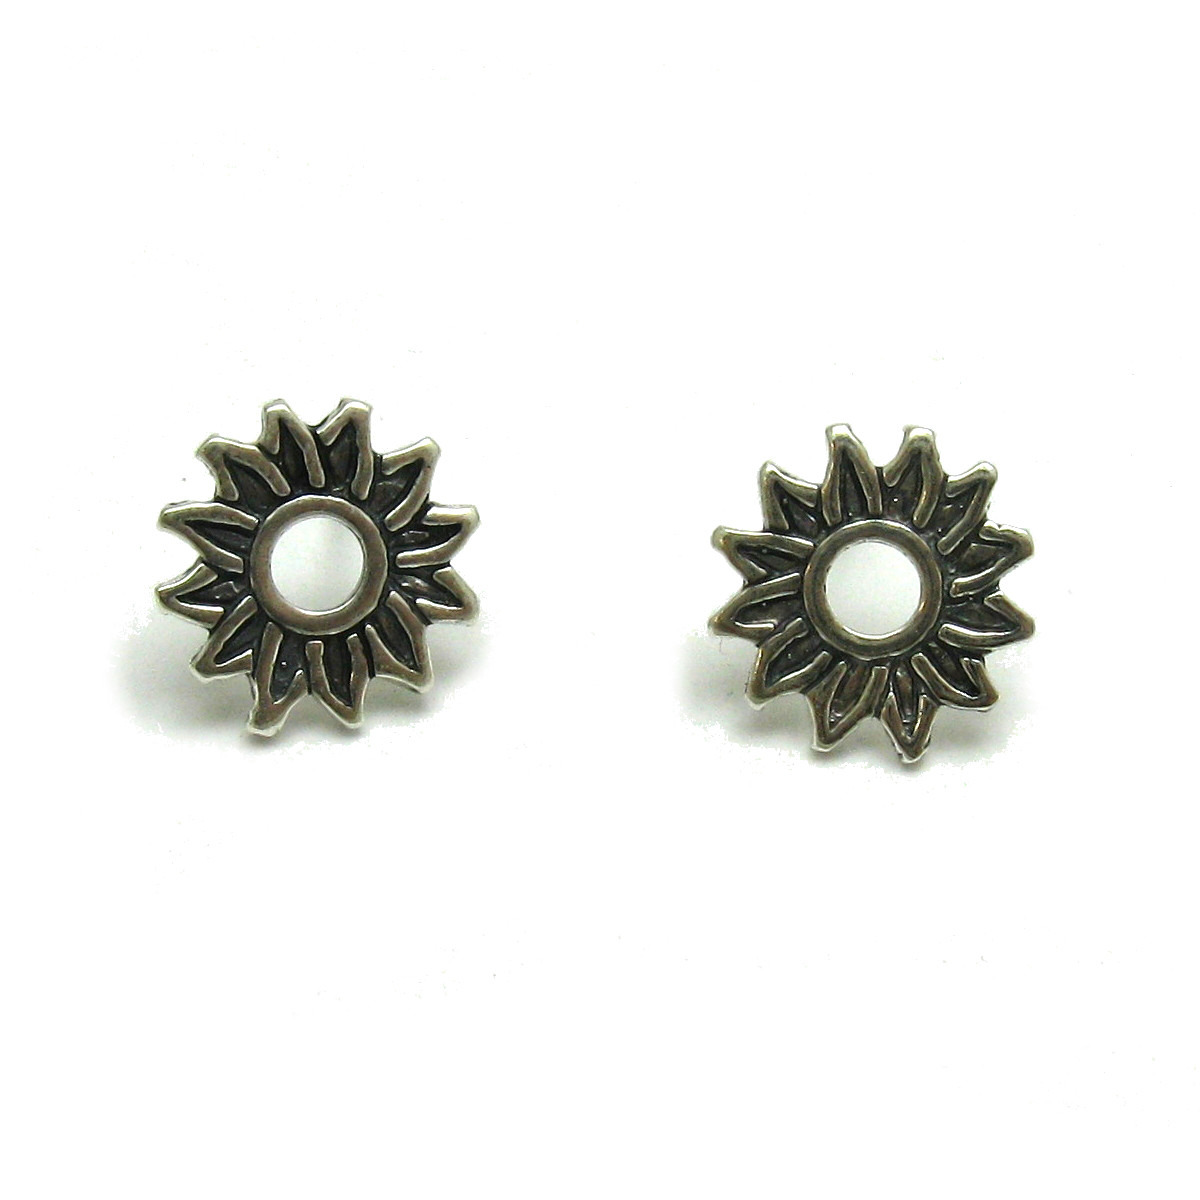 Silver earrings - E000674